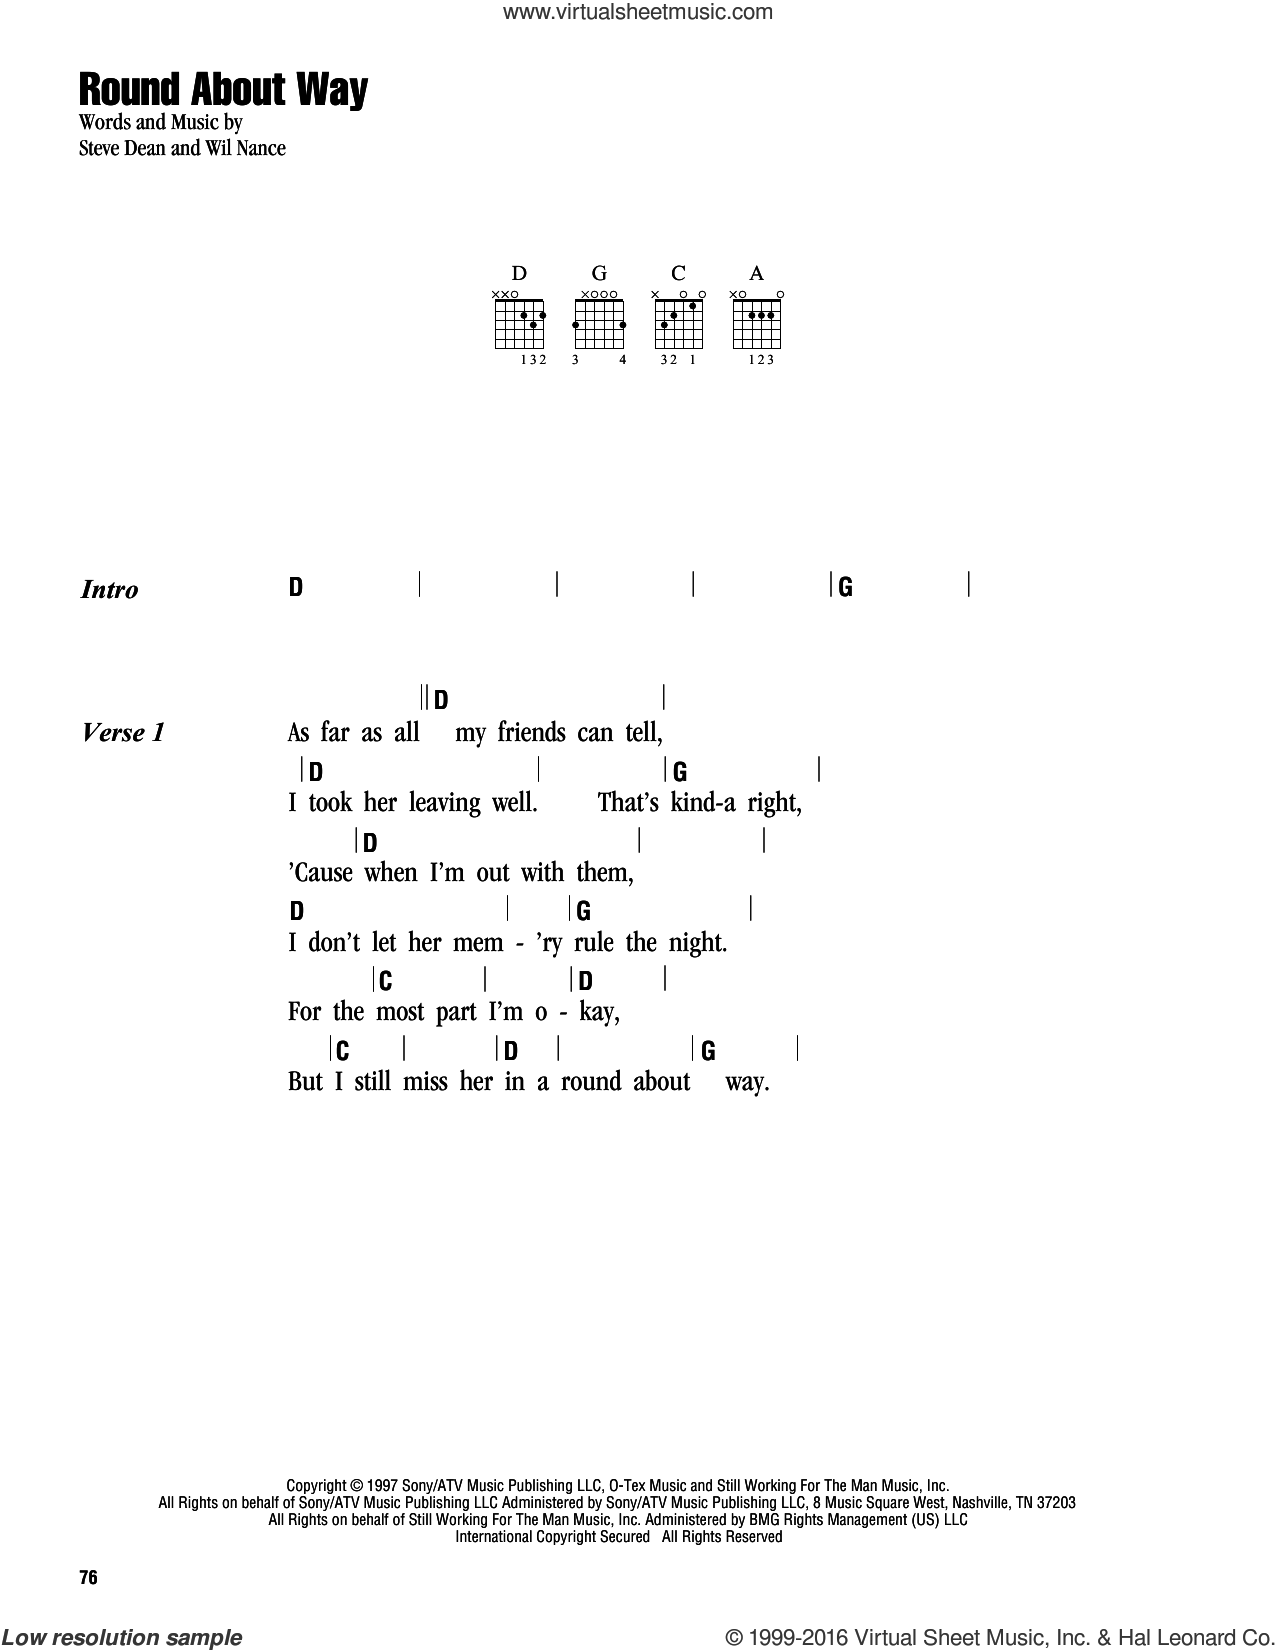 Round About Way sheet music for guitar (chords) by George Strait, Steve Dean and Wil Nance, intermediate. Score Image Preview.